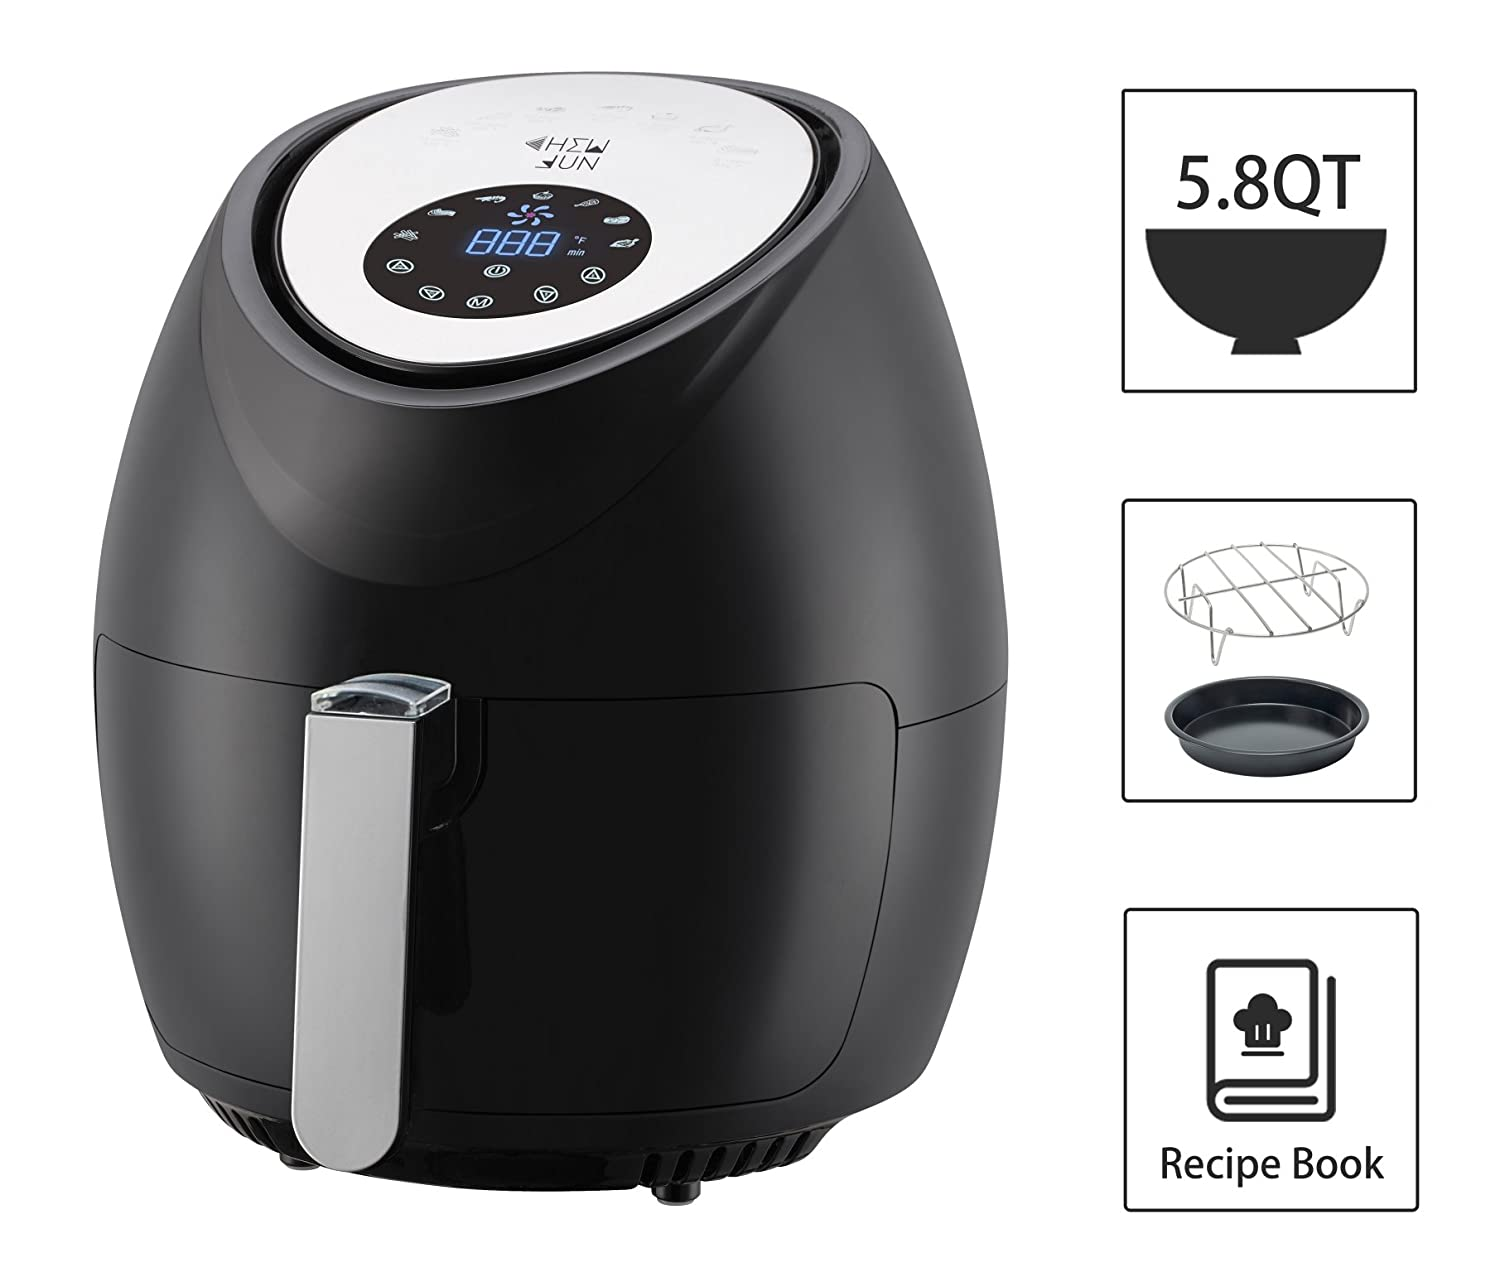 5.8 Quart Digital XL Air Fryer with 7 Cooking Settings, 2 Piece Accessory Set & Recipe Book, Black by CHEW FUN